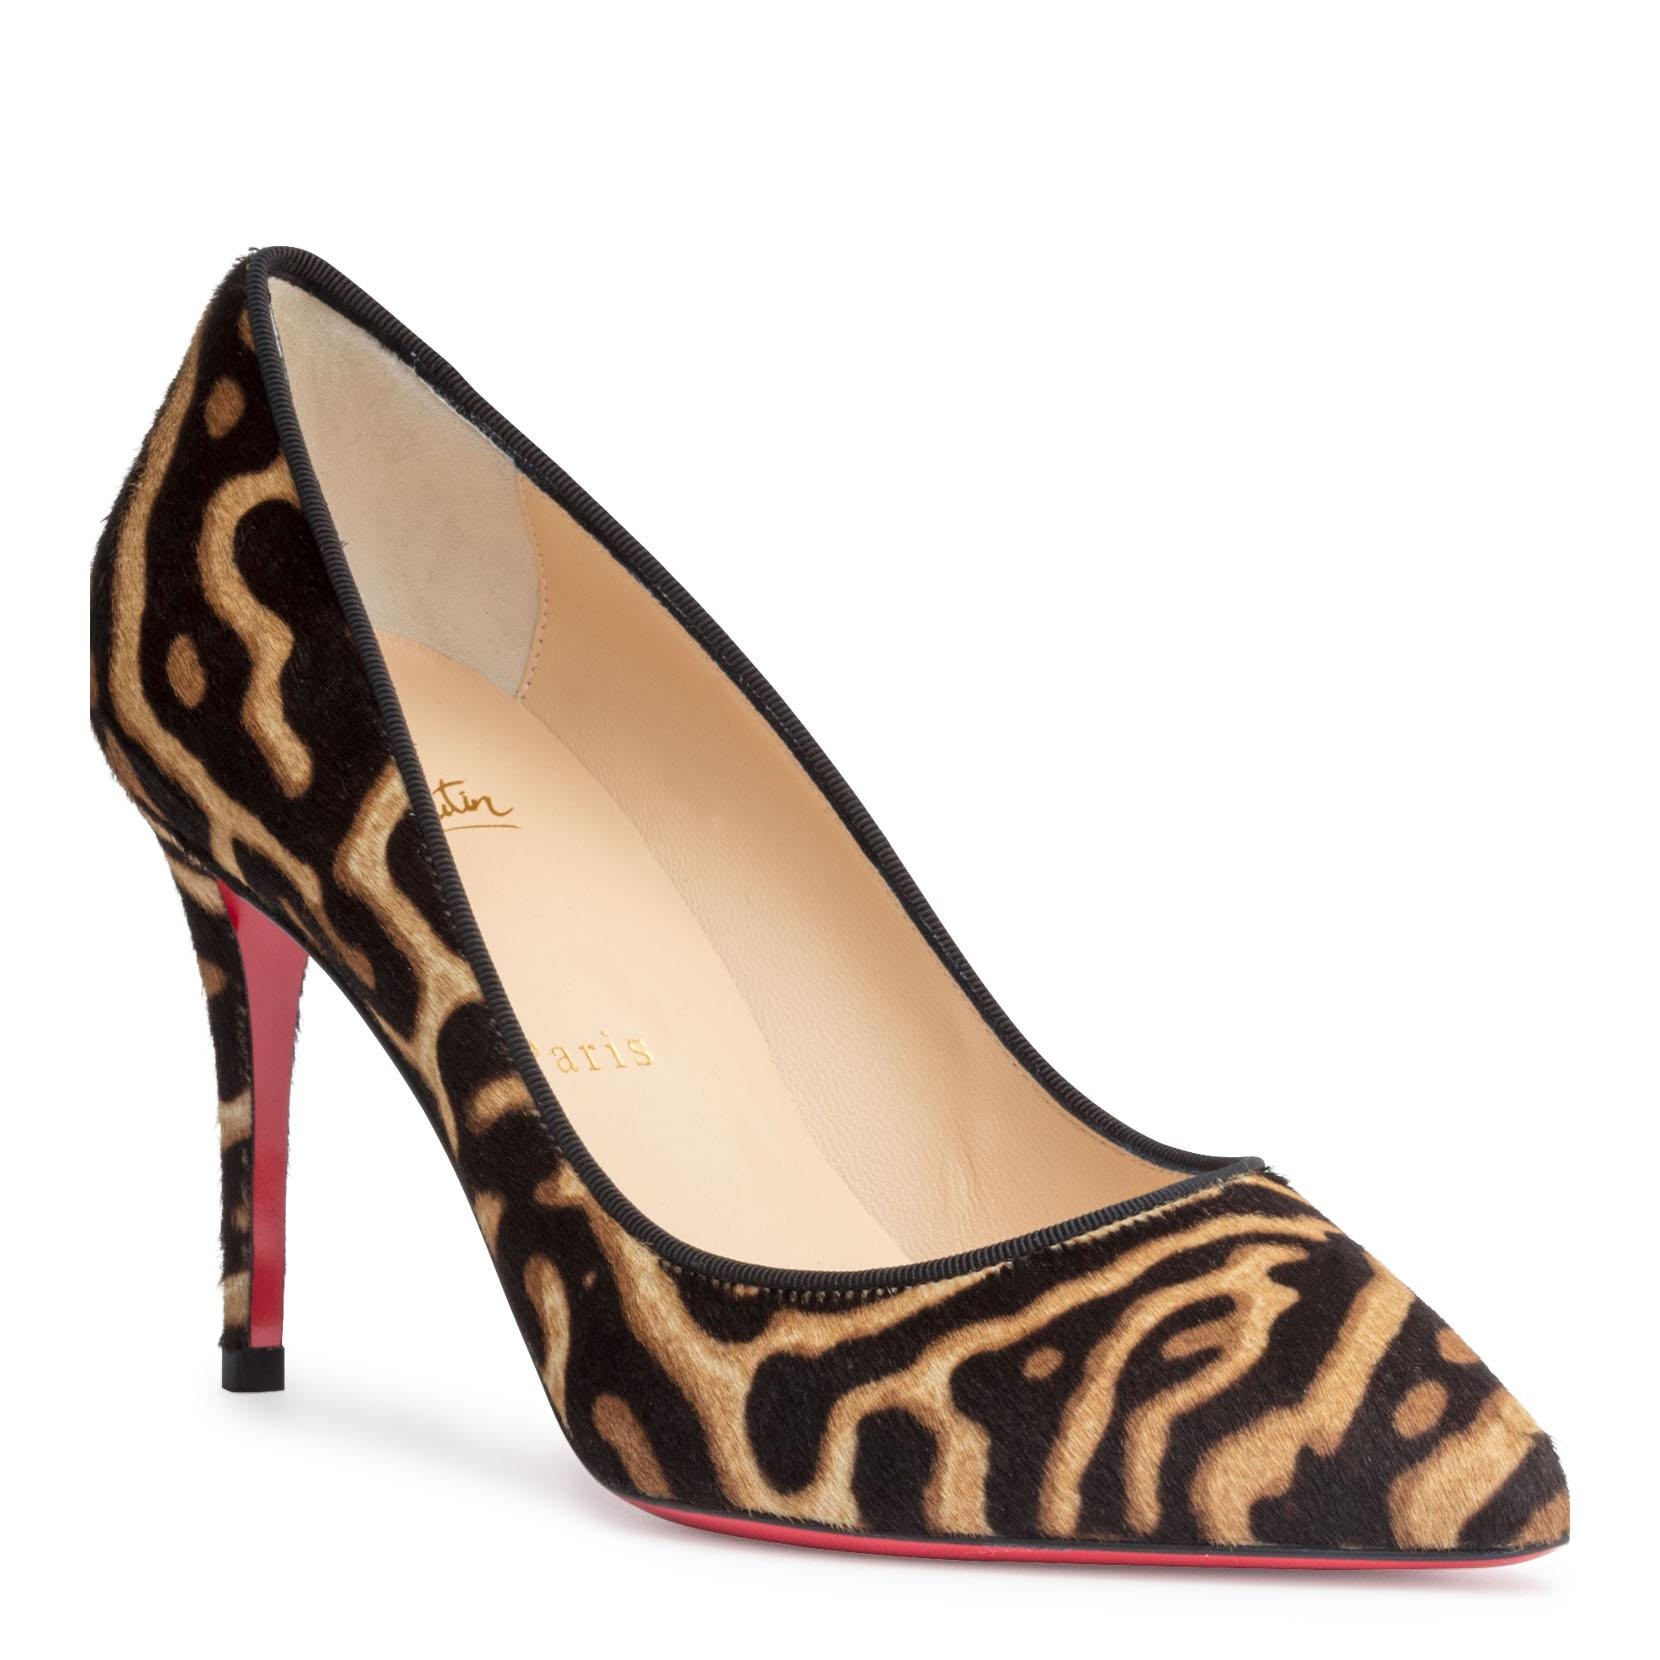 on sale a676b 15e72 Pigalle Follies 85 Pony Miaou Pumps in Black